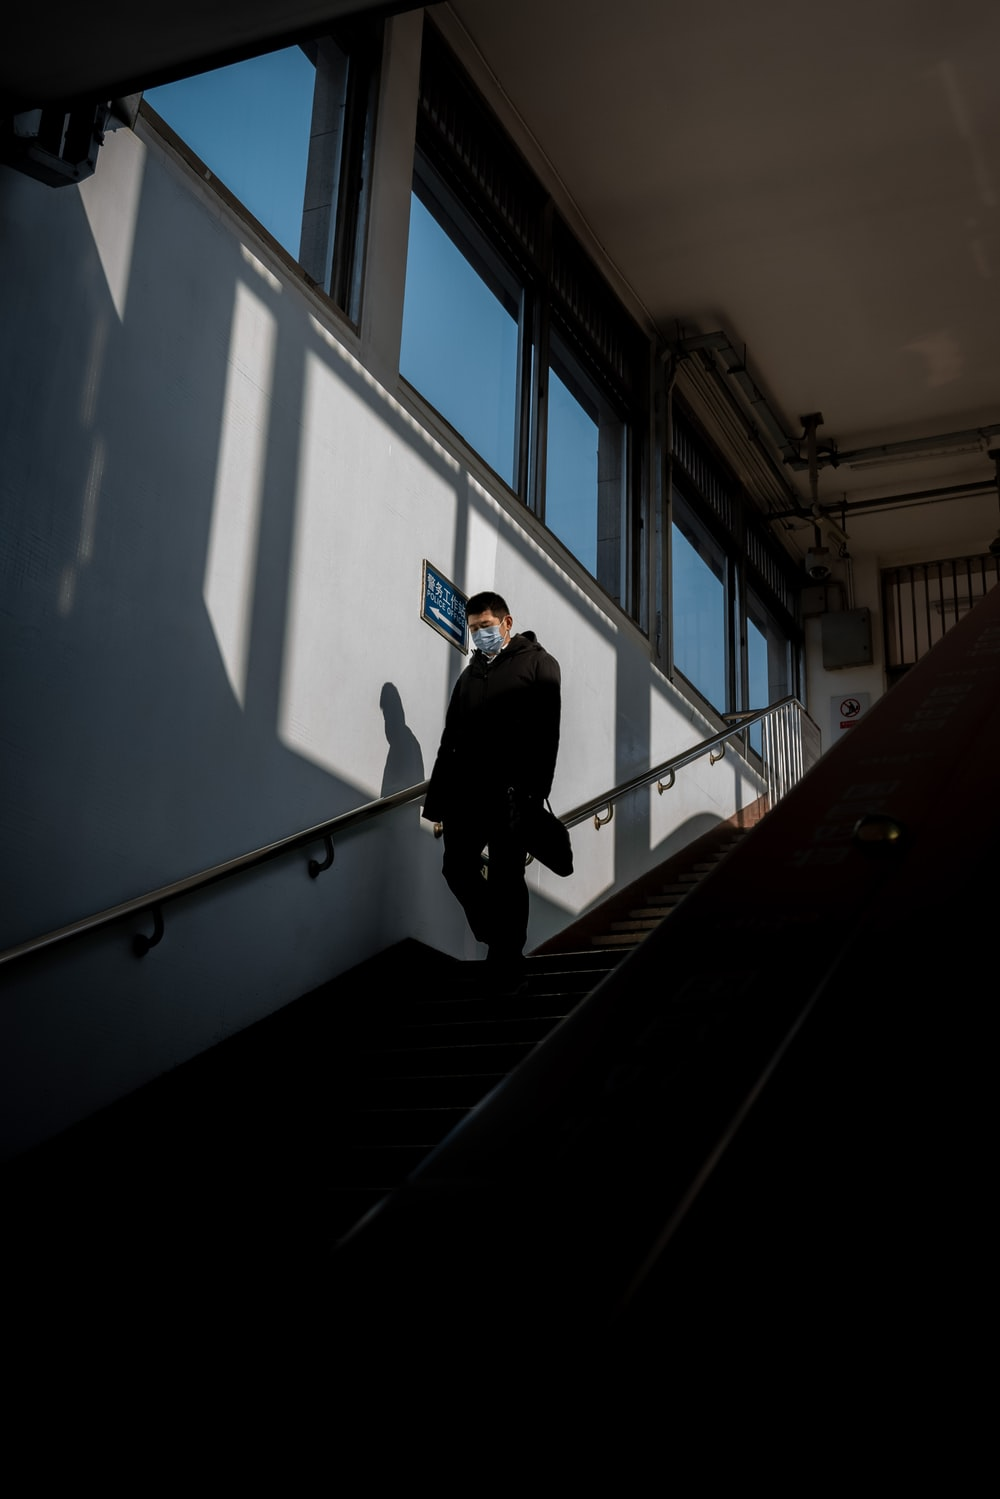 man in black jacket walking down the stairs